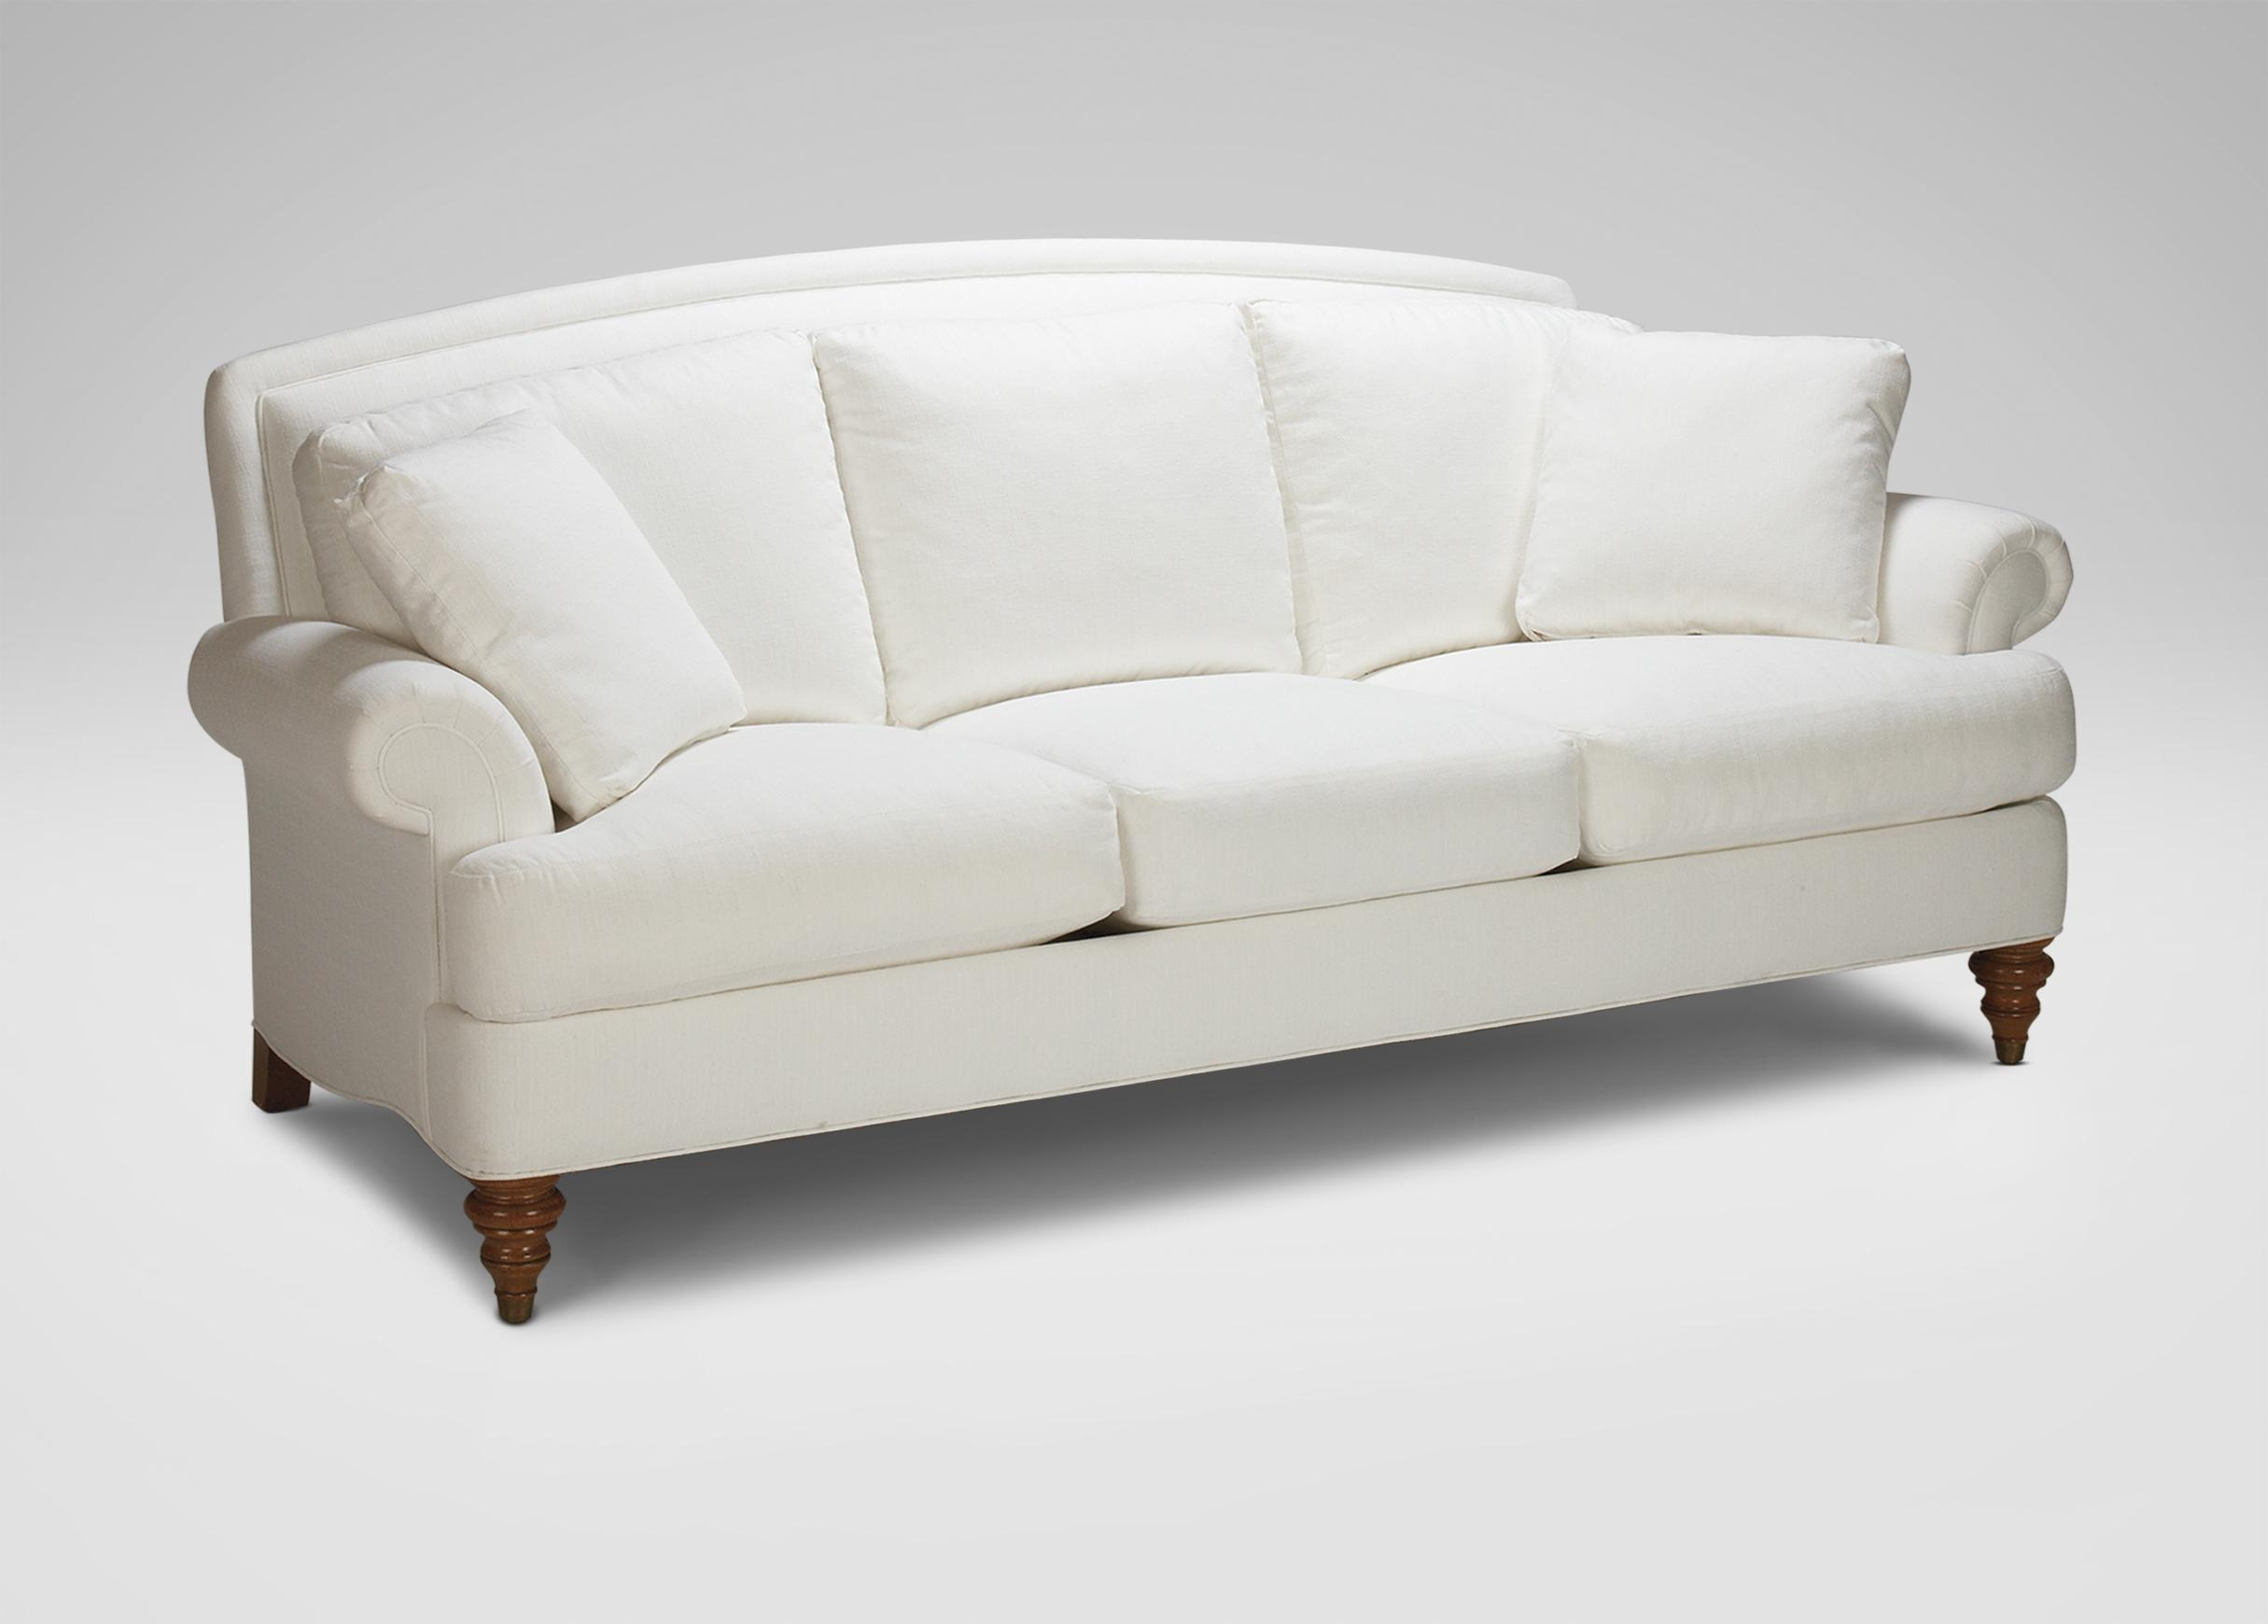 Hyde Three Cushion Sofa | Sofas & Loveseats Inside Ethan Allen Sofas And Chairs (View 9 of 20)